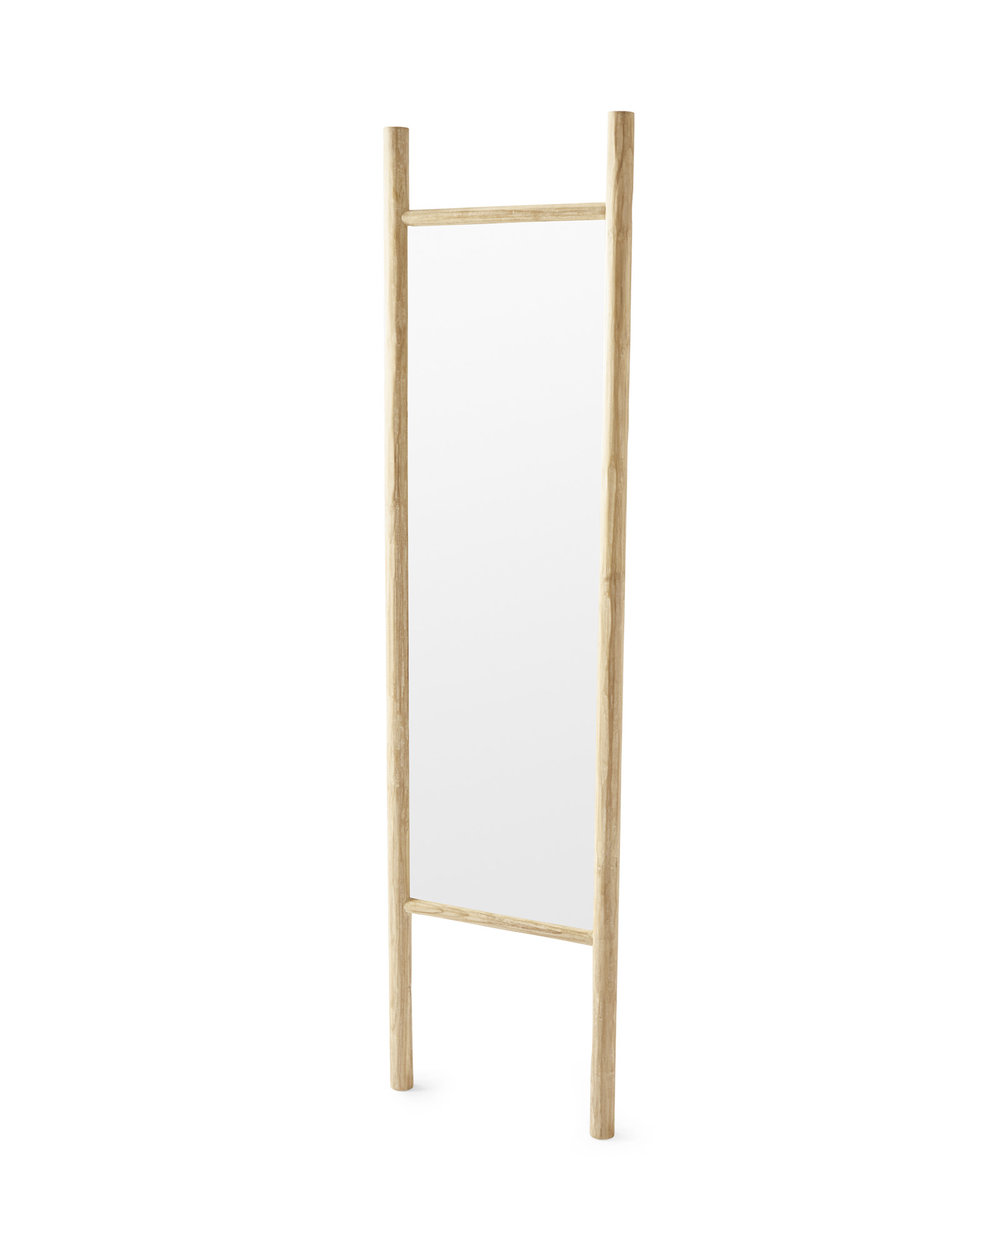 Teak Ladder Mirror